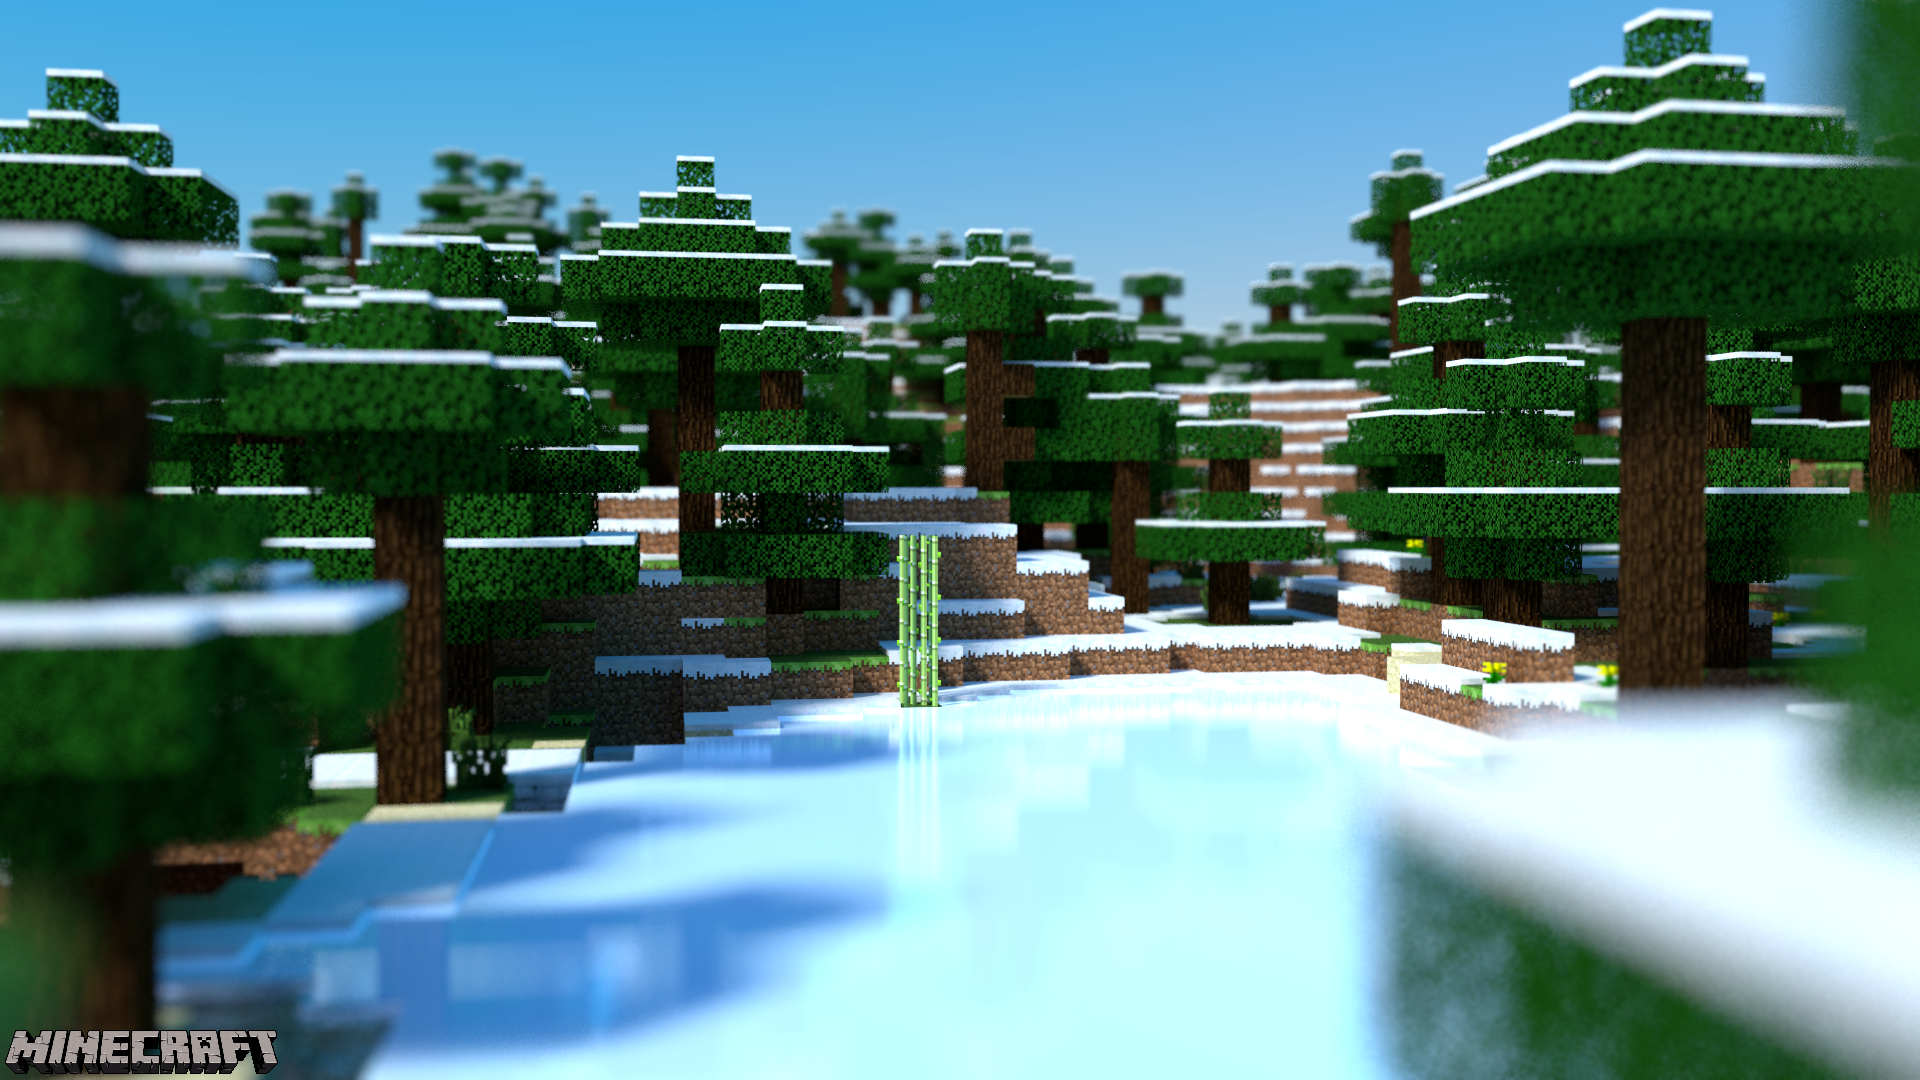 Frozen Minecraft Wallpaper Image